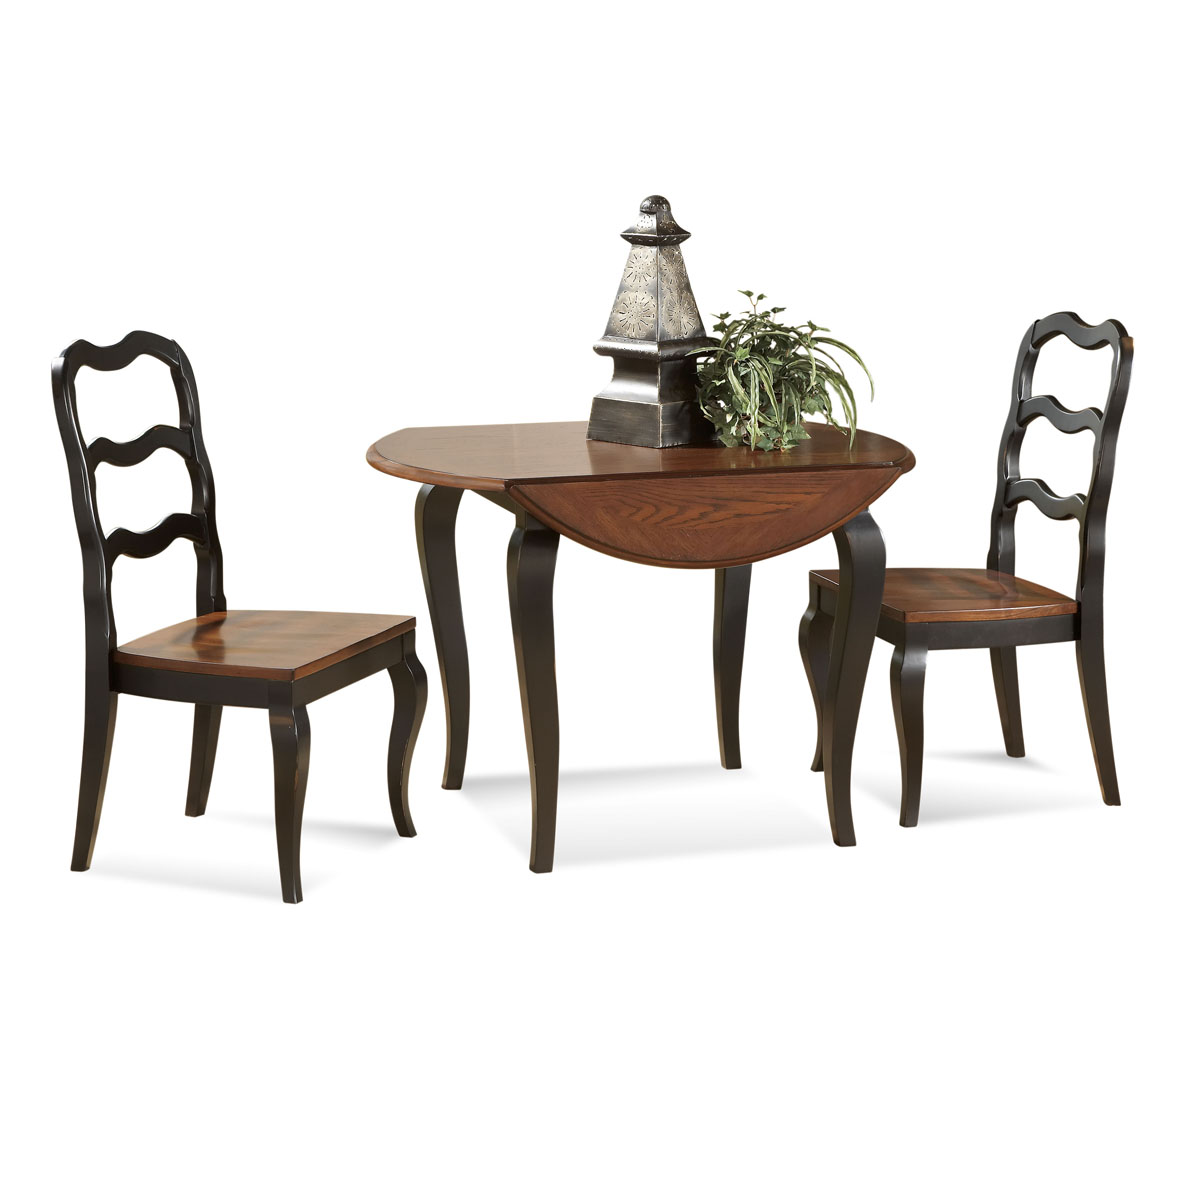 5 styles of drop leaf dining table for small spaces for Mini dining table and chairs